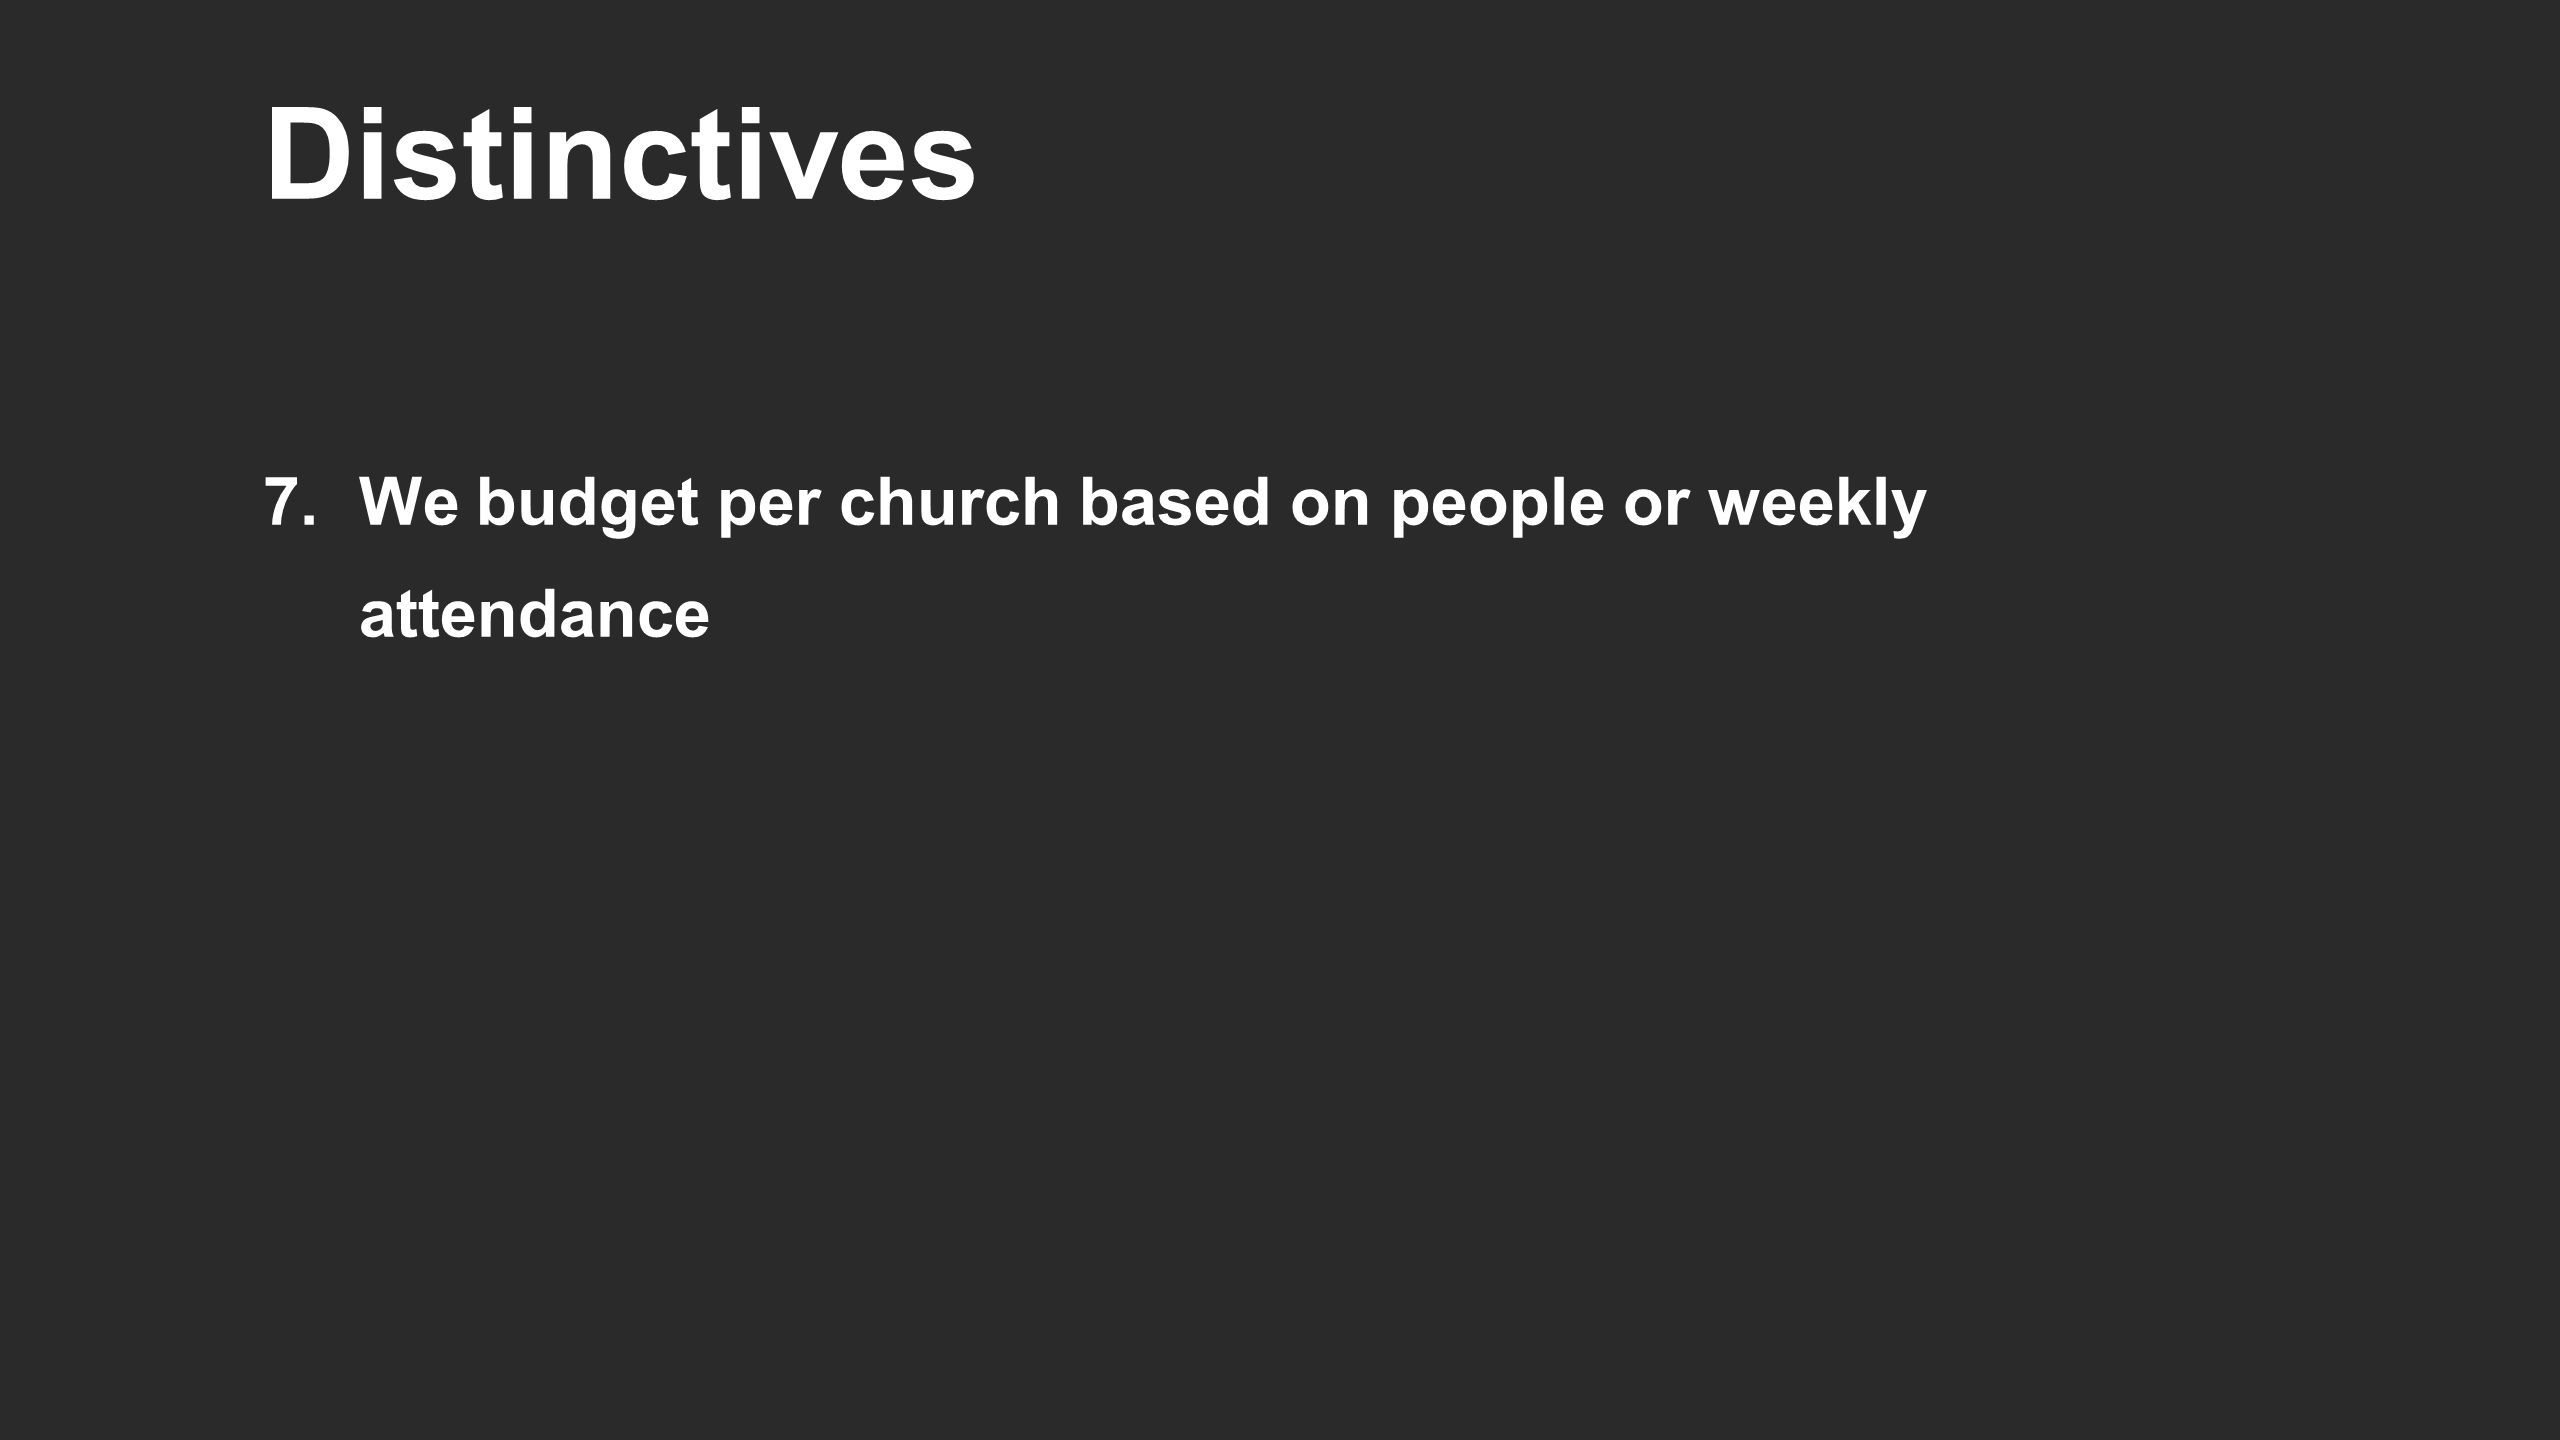 Distinctives 7.We budget per church based on people or weekly attendance